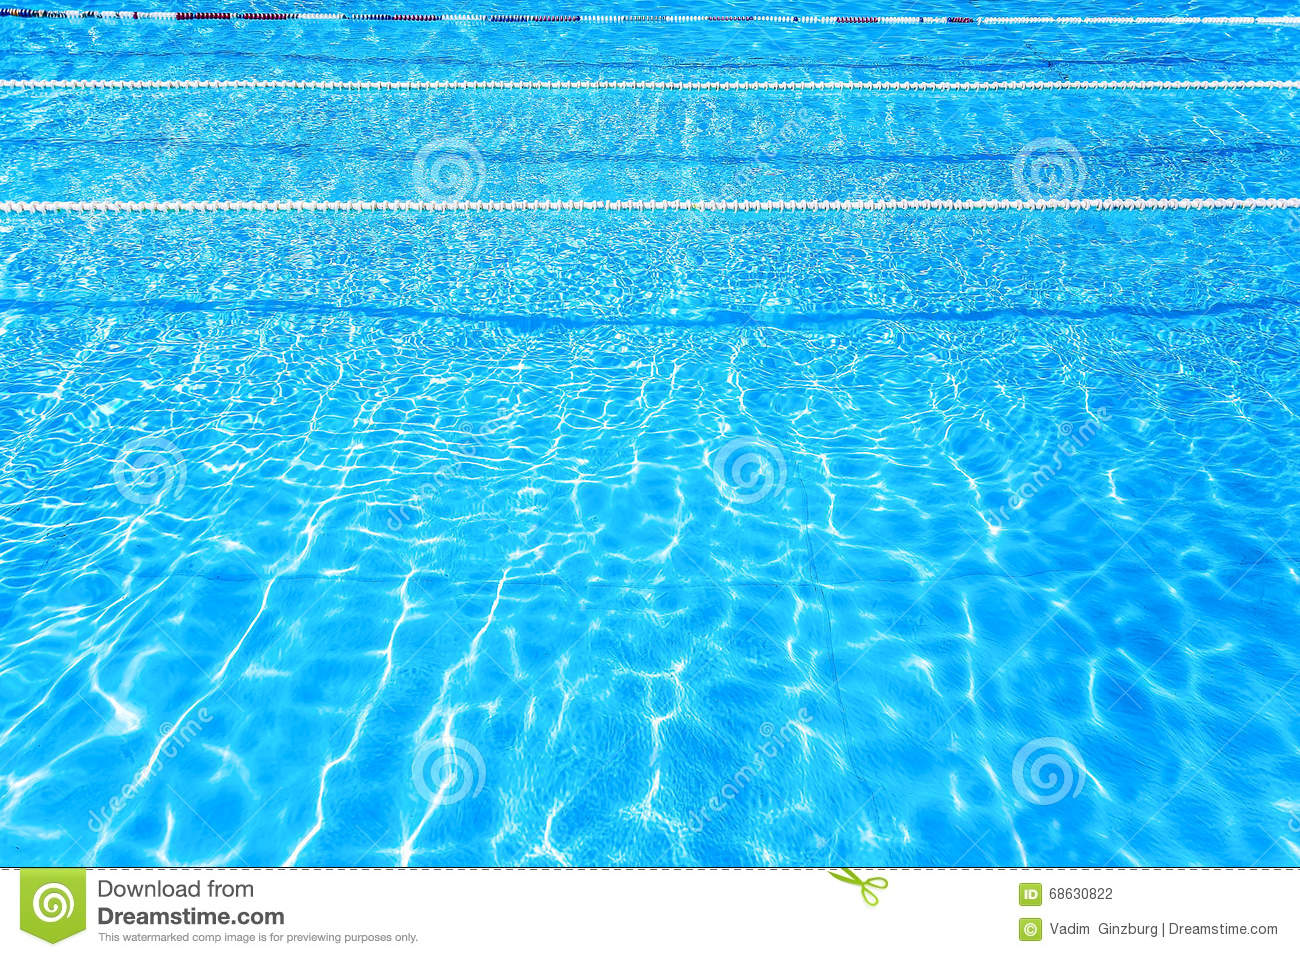 Pool Water Texture Seamless seamless swimming pool water stock photo - image: 68630822